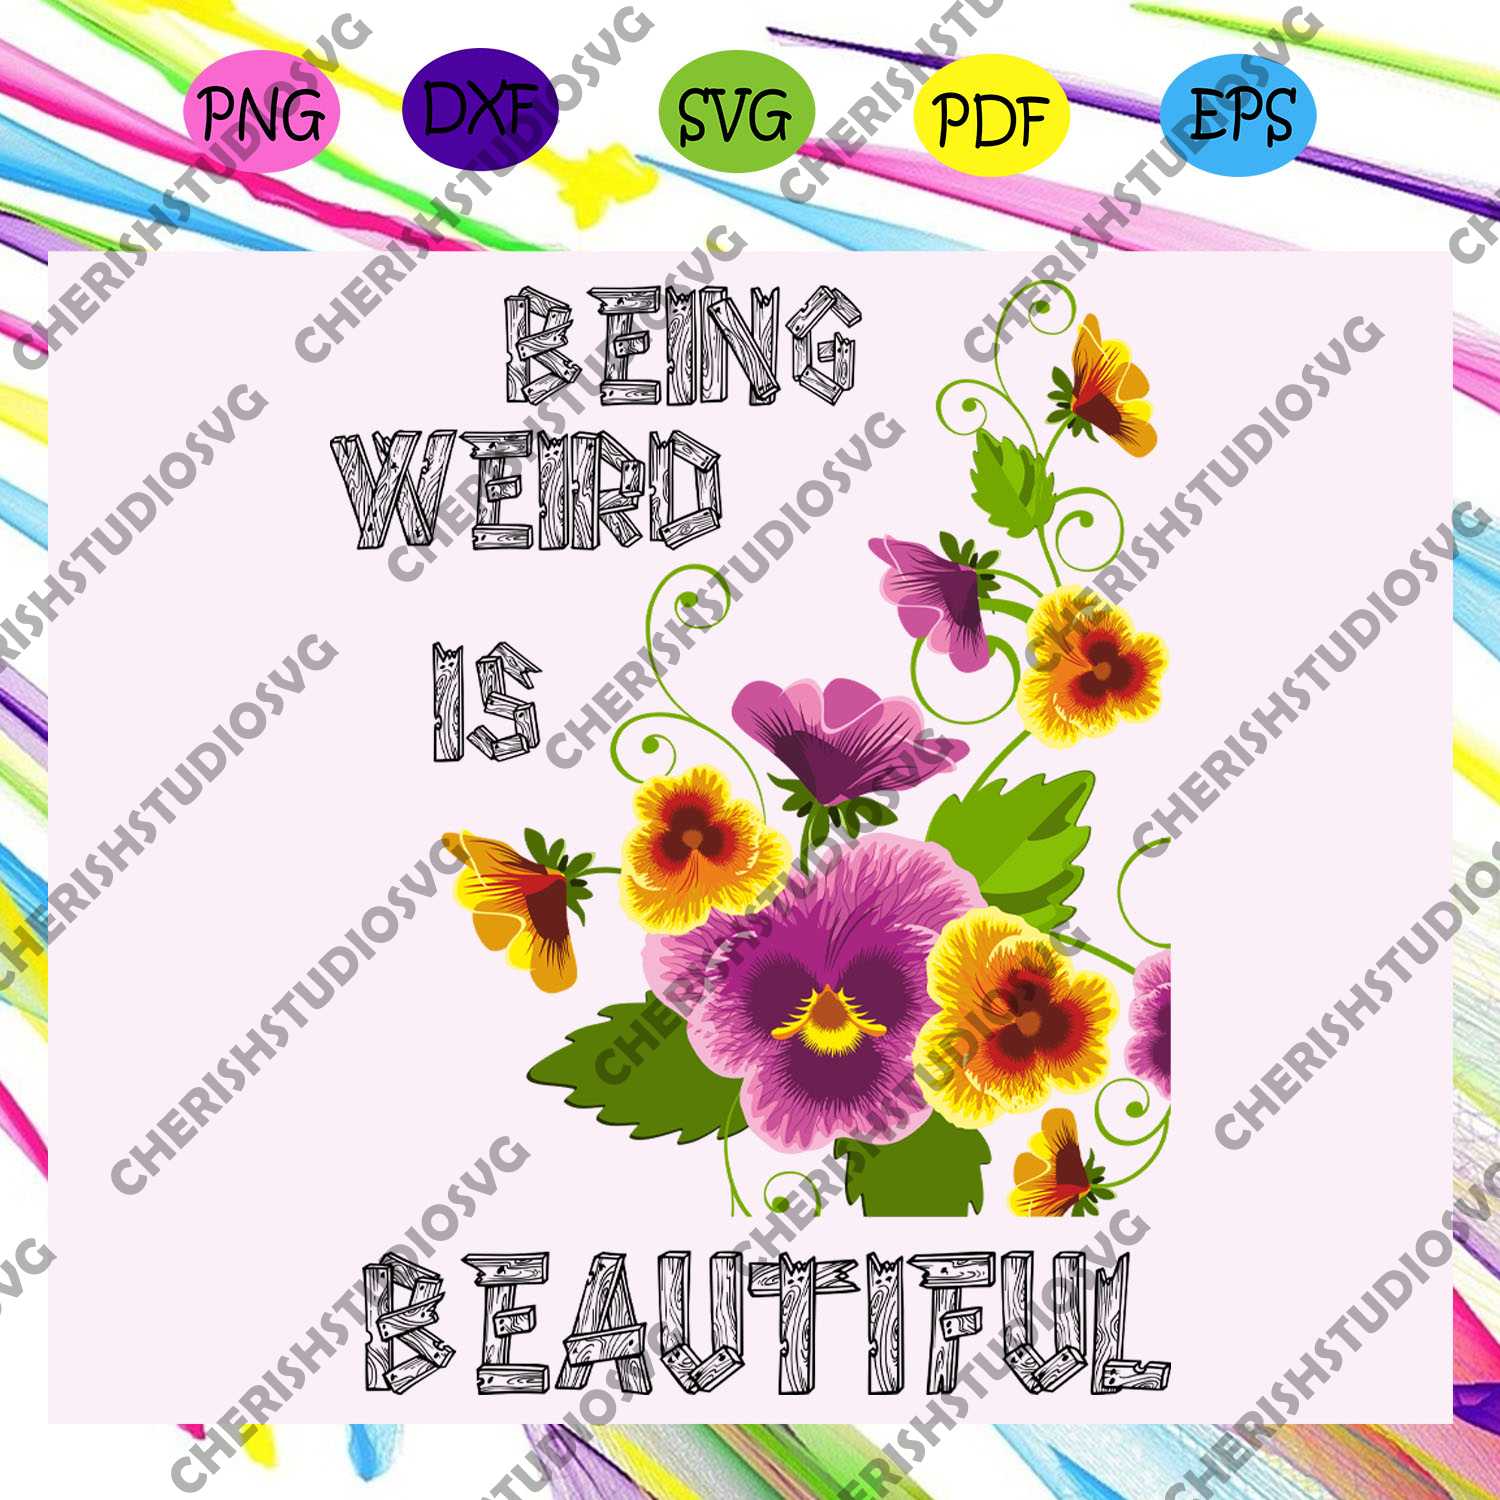 Being weird is beautiful svg, weird thing, being weird, life is interesting, being interesting, being beautiful, being different, natural life,trending svg For Silhouette, Files For Cricut, SVG, DXF, EPS, PNG Instant Download